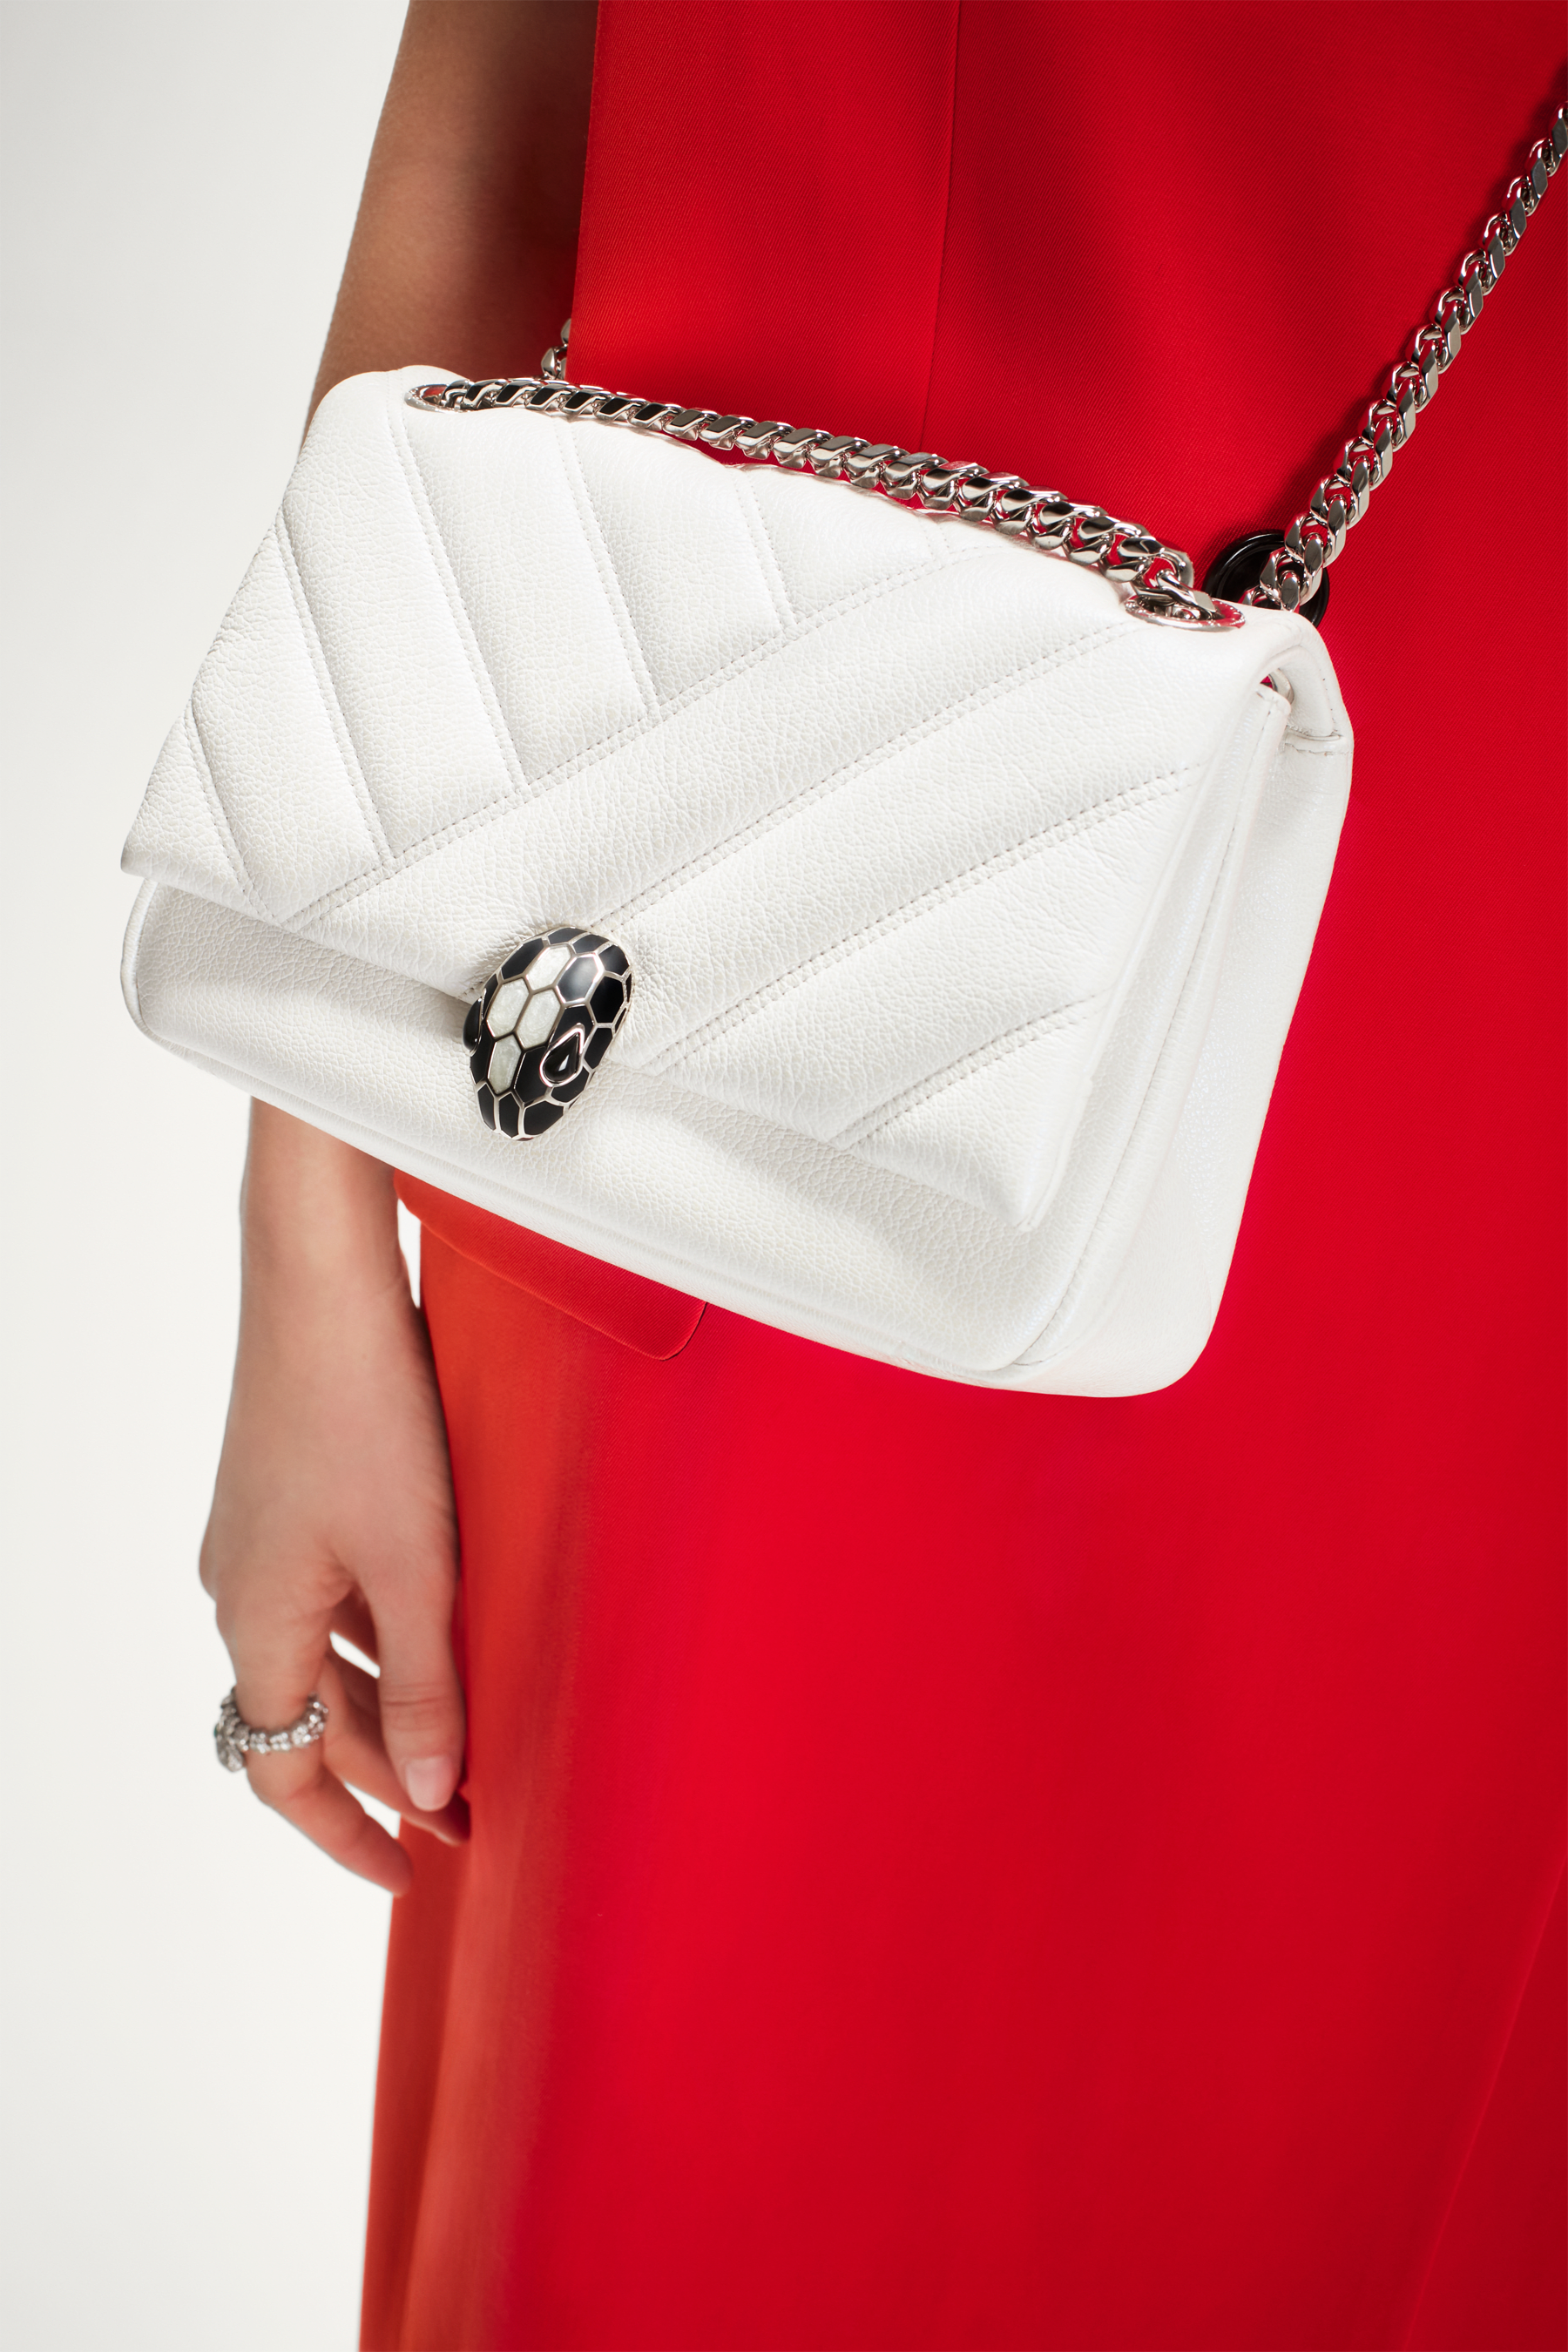 """Serpenti Cabochon"" shoulder bag in soft quilted white agate goatskin with a pearled, iridescent effect and a graphic motif. Brass palladium plated tempting snake head closure in matte black and shiny white enamel and black onyx eyes. 290236 image 6"